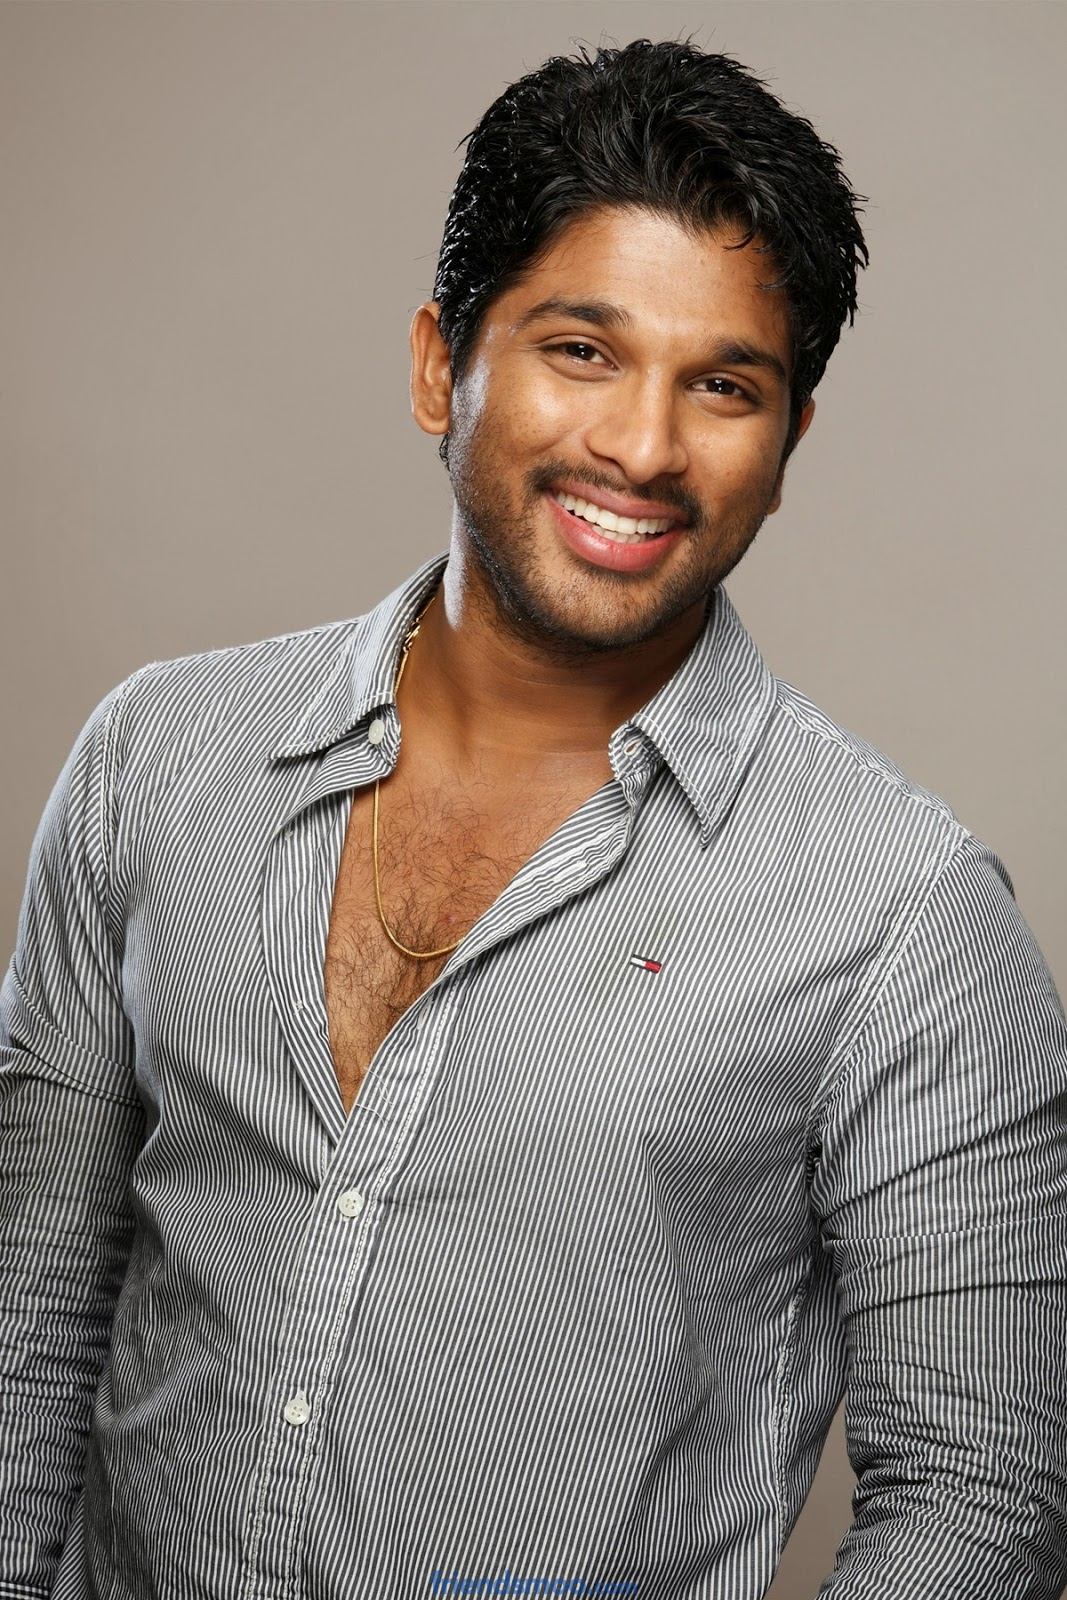 Stylish Star Allu Arjun is a Brand Ambassador for Hero Motors Crop